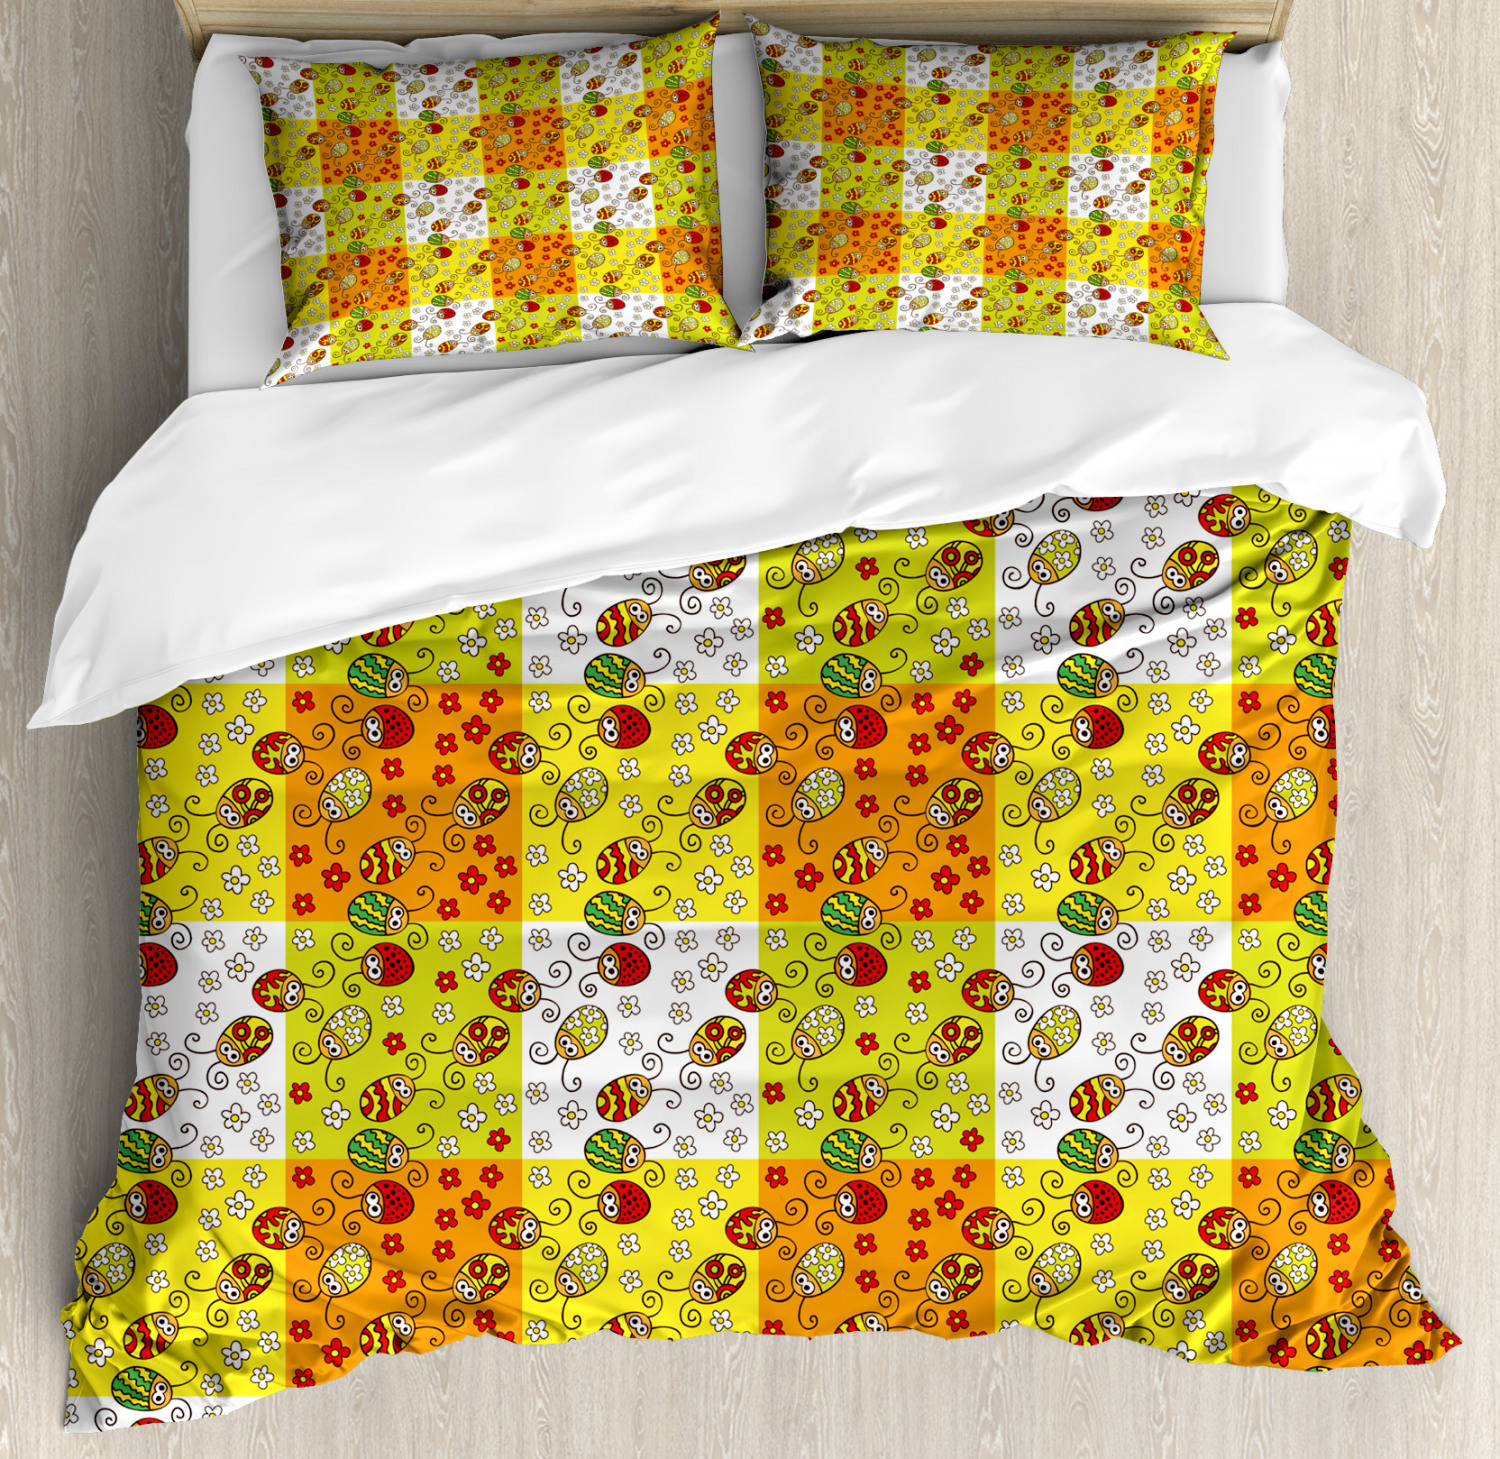 Ladybugs Duvet Cover Set Twin Queen King Sizes with Pillow Shams Ambesonne